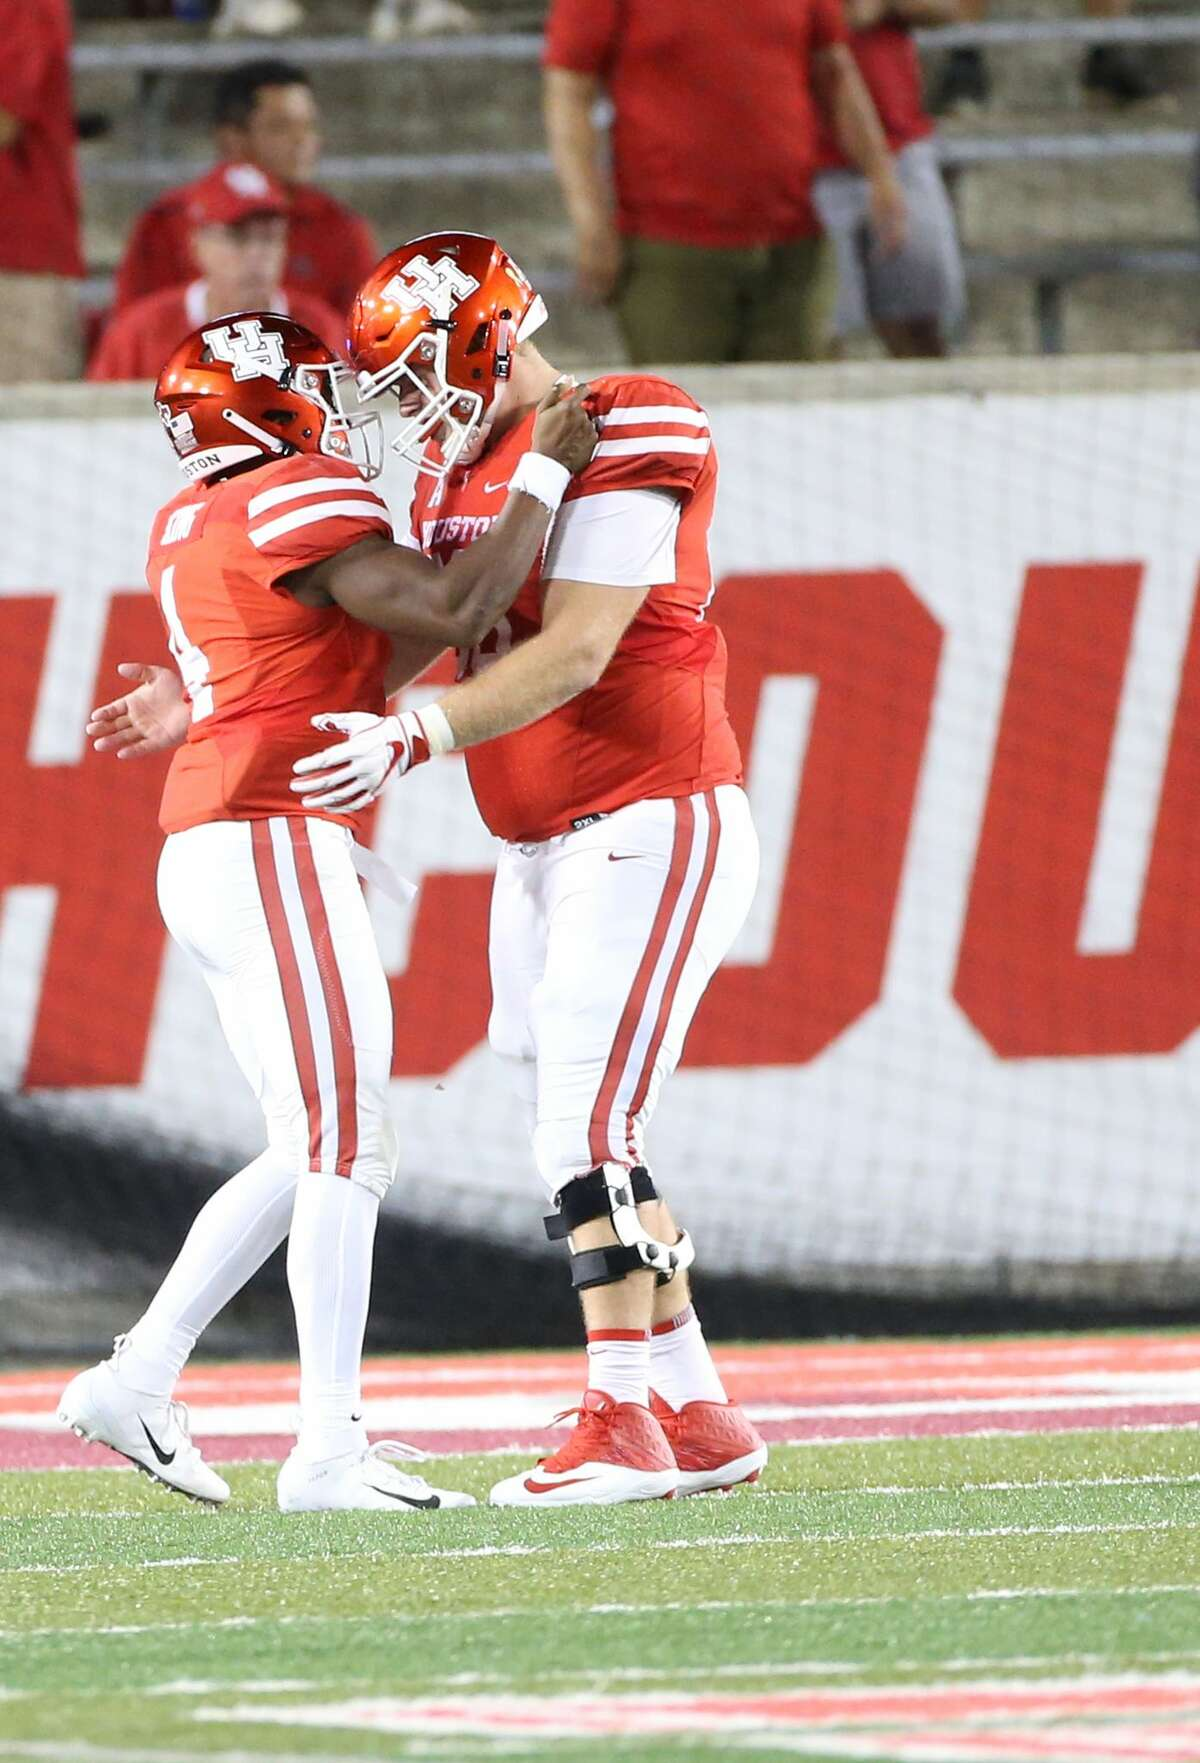 Houston Cougars quarterback D'Eriq King (4) is congratulated by Houston Cougars offensive lineman Will Noble (69) after King ran for a touchdown in the second half against Tulsa Golden Hurricane at TDECU Stadium on Thursday, Oct. 4, 2018 in Houston. Houston Cougars won the game 41-26.